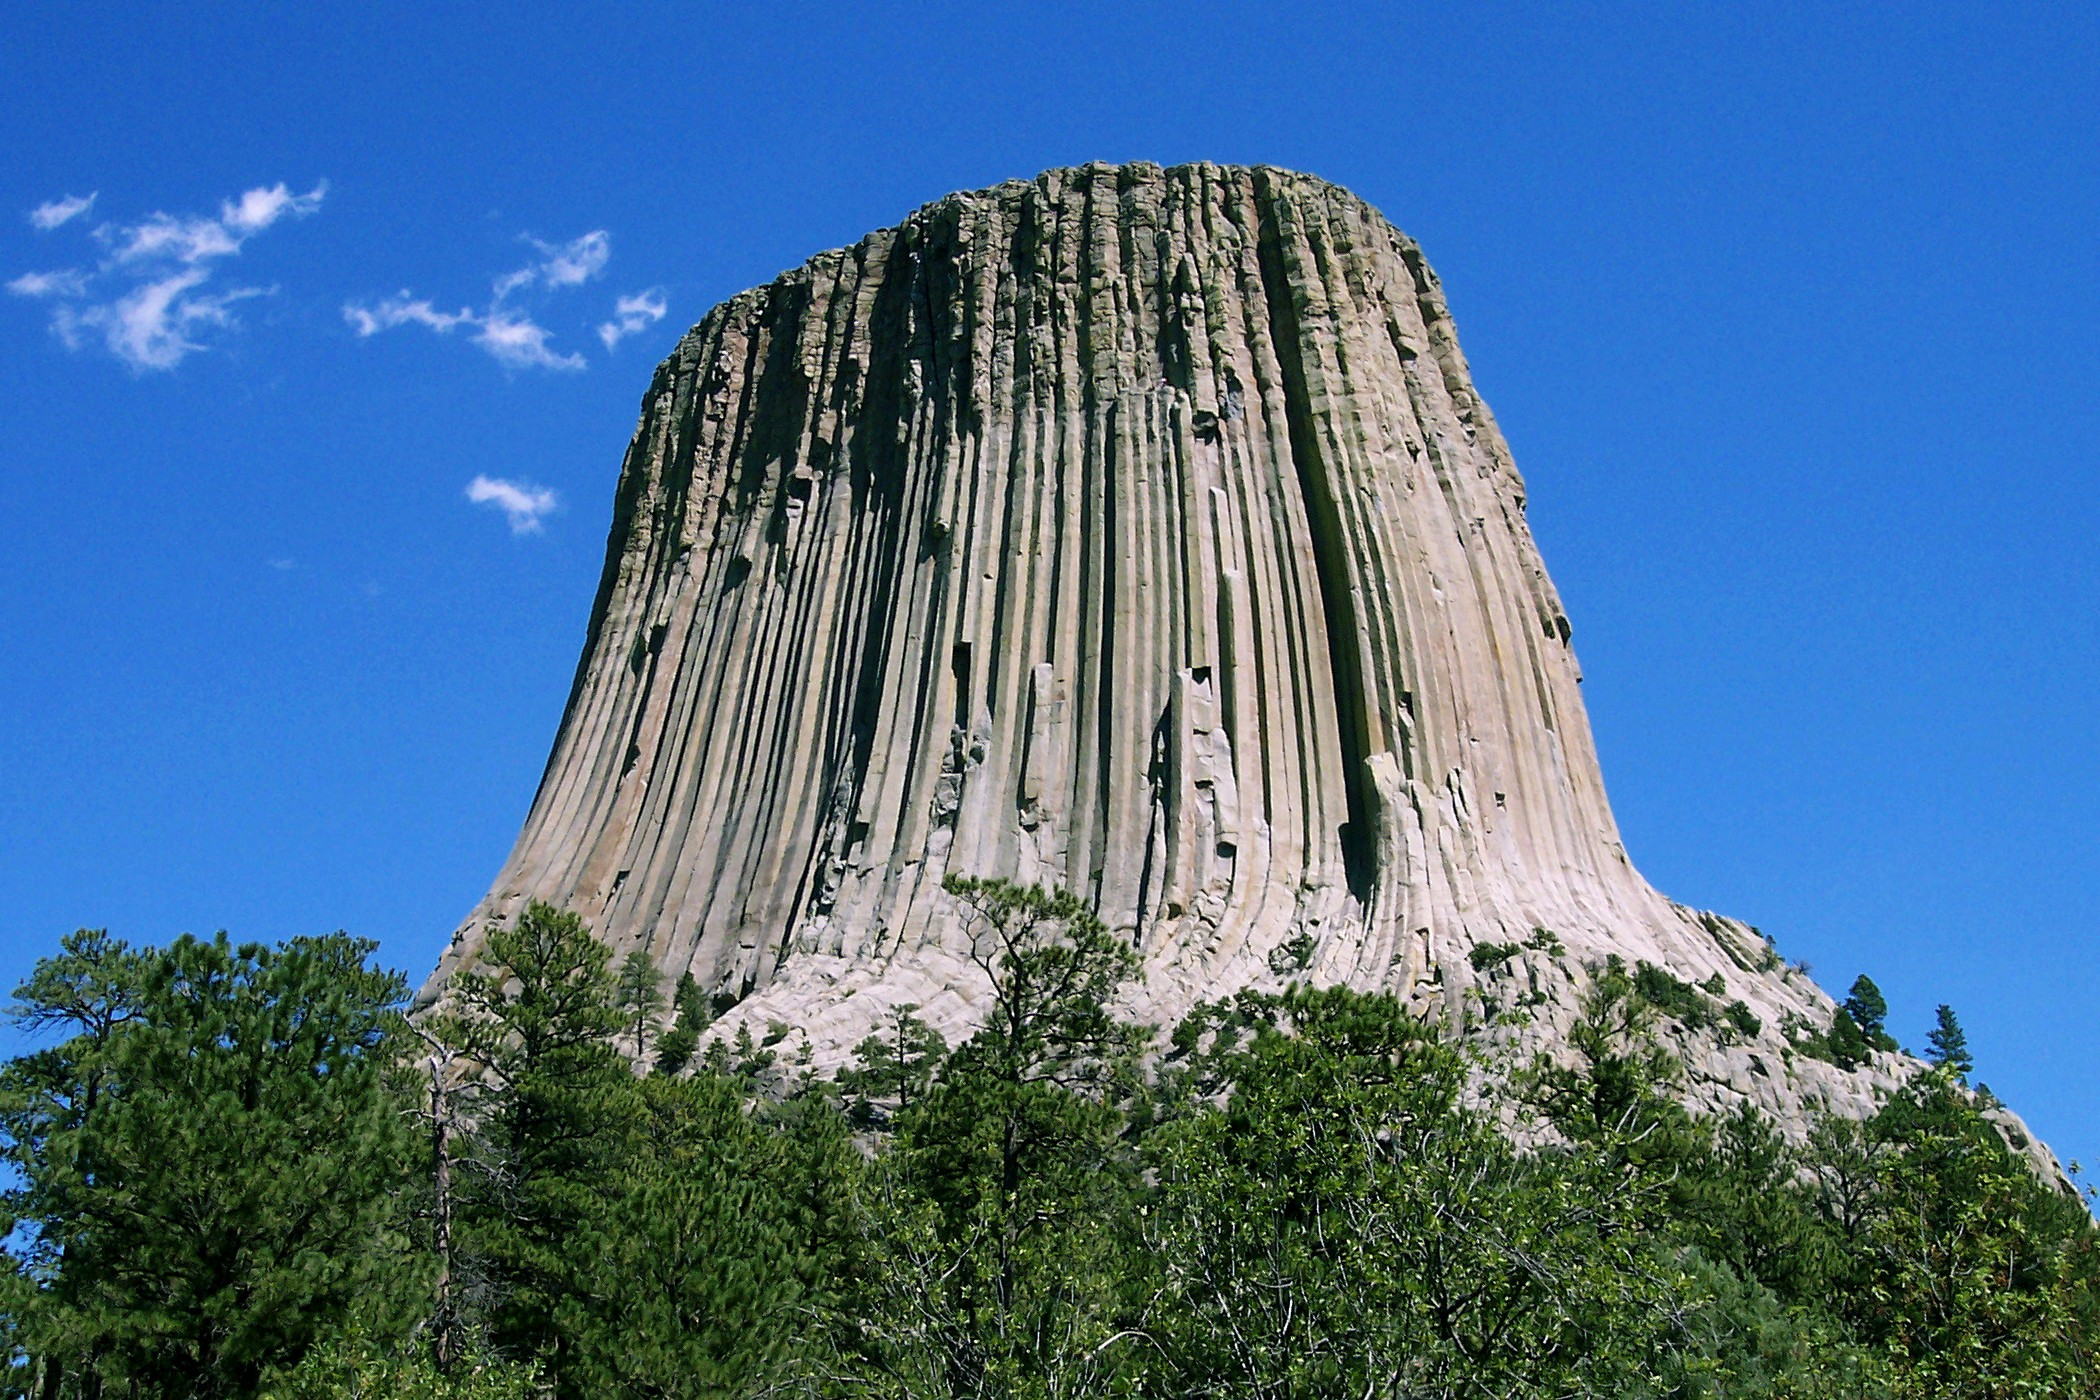 https://i2.wp.com/upload.wikimedia.org/wikipedia/commons/4/46/Devils_Tower_CROP.jpg